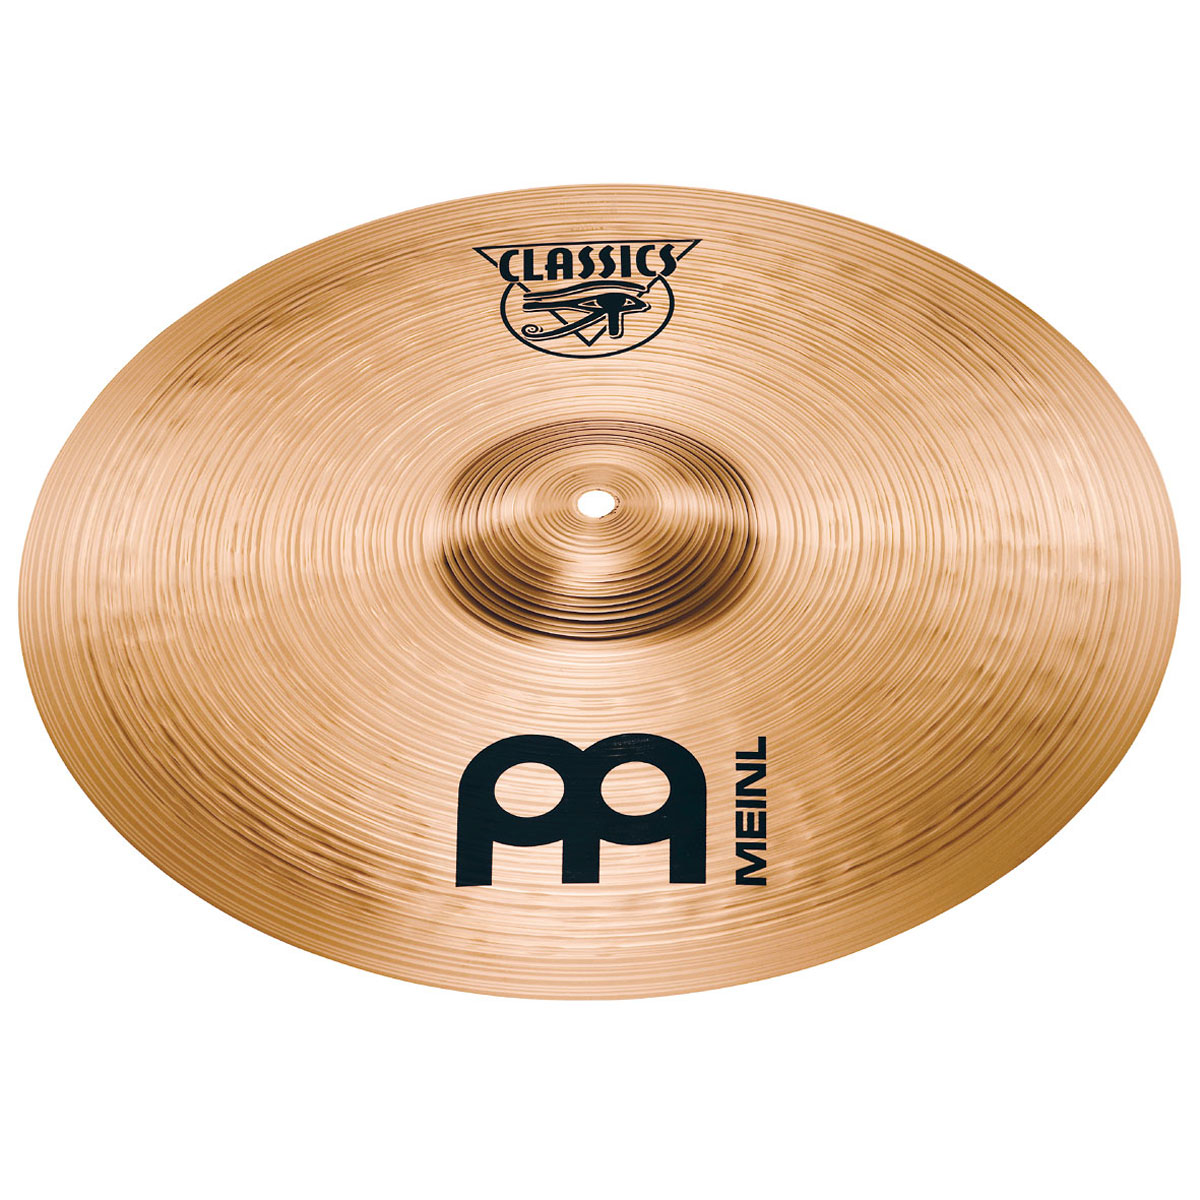 "Meinl 20"" Classic Powerful Ride Cymbal"